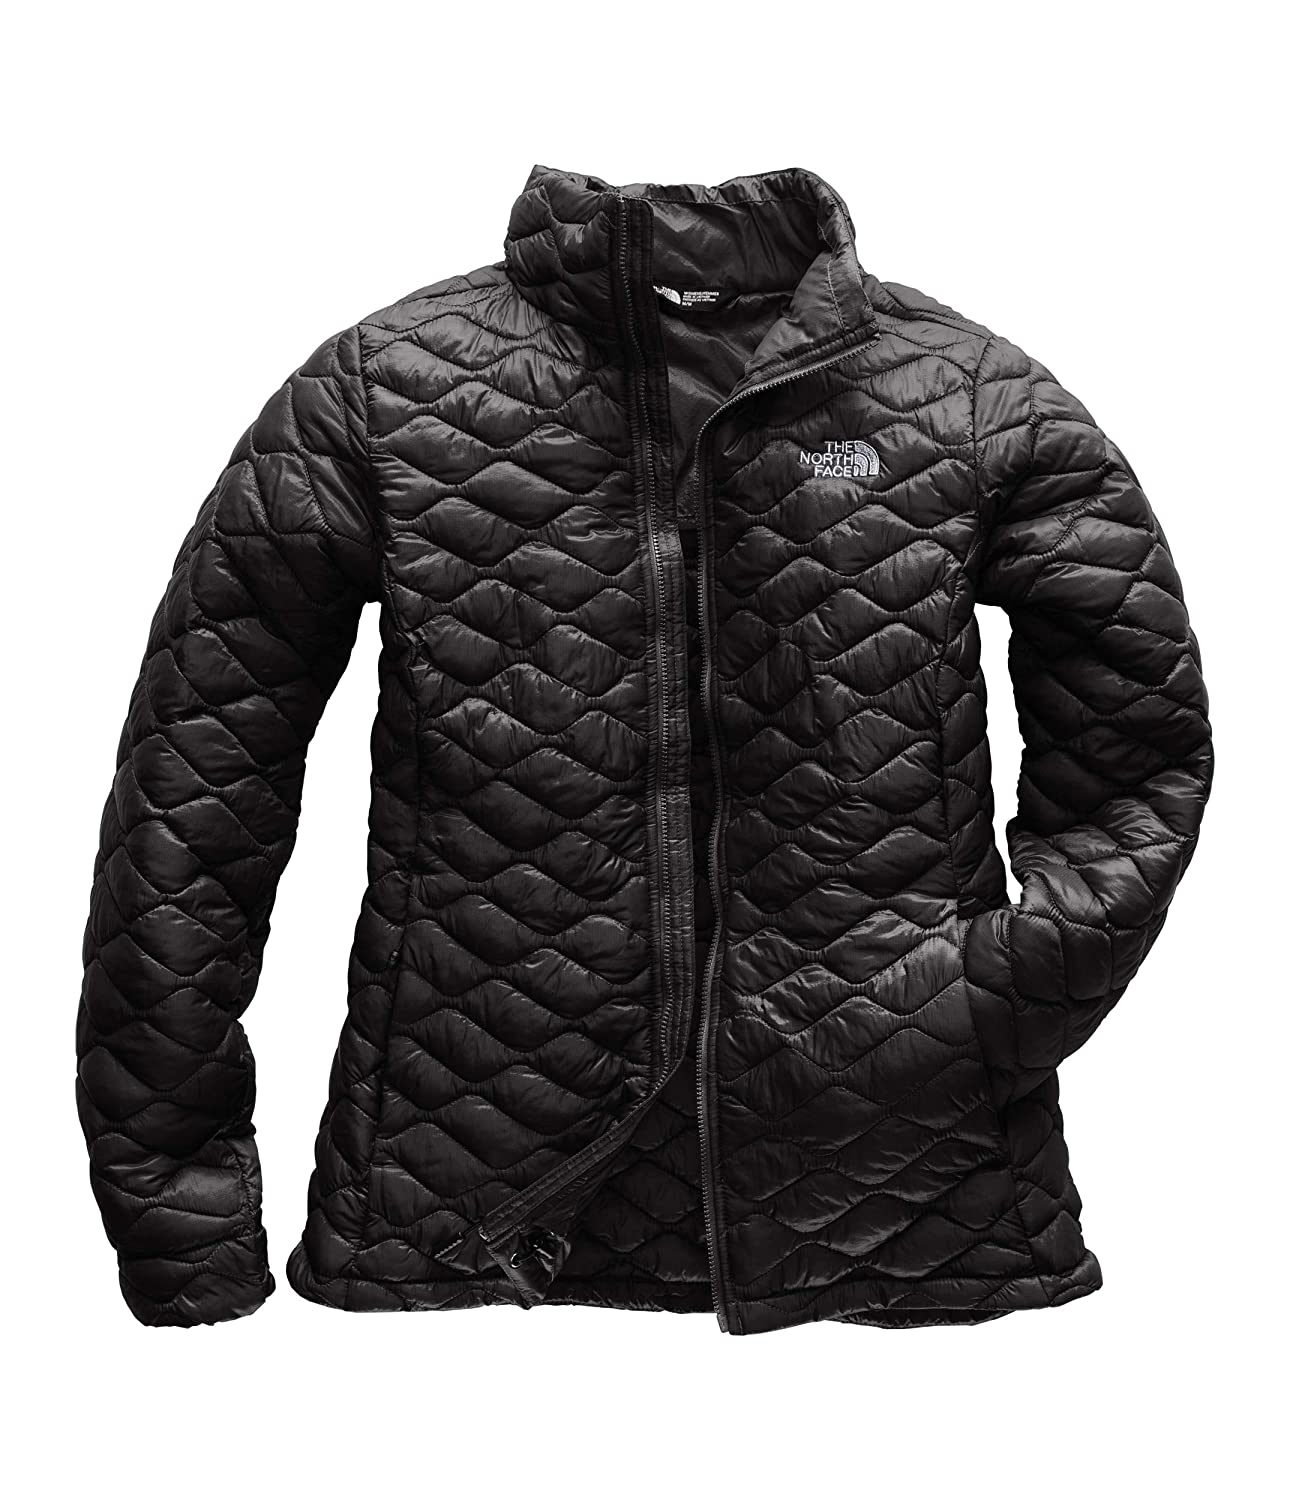 TNF Black THE NORTH FACE Women's Thermoball™ Jacket